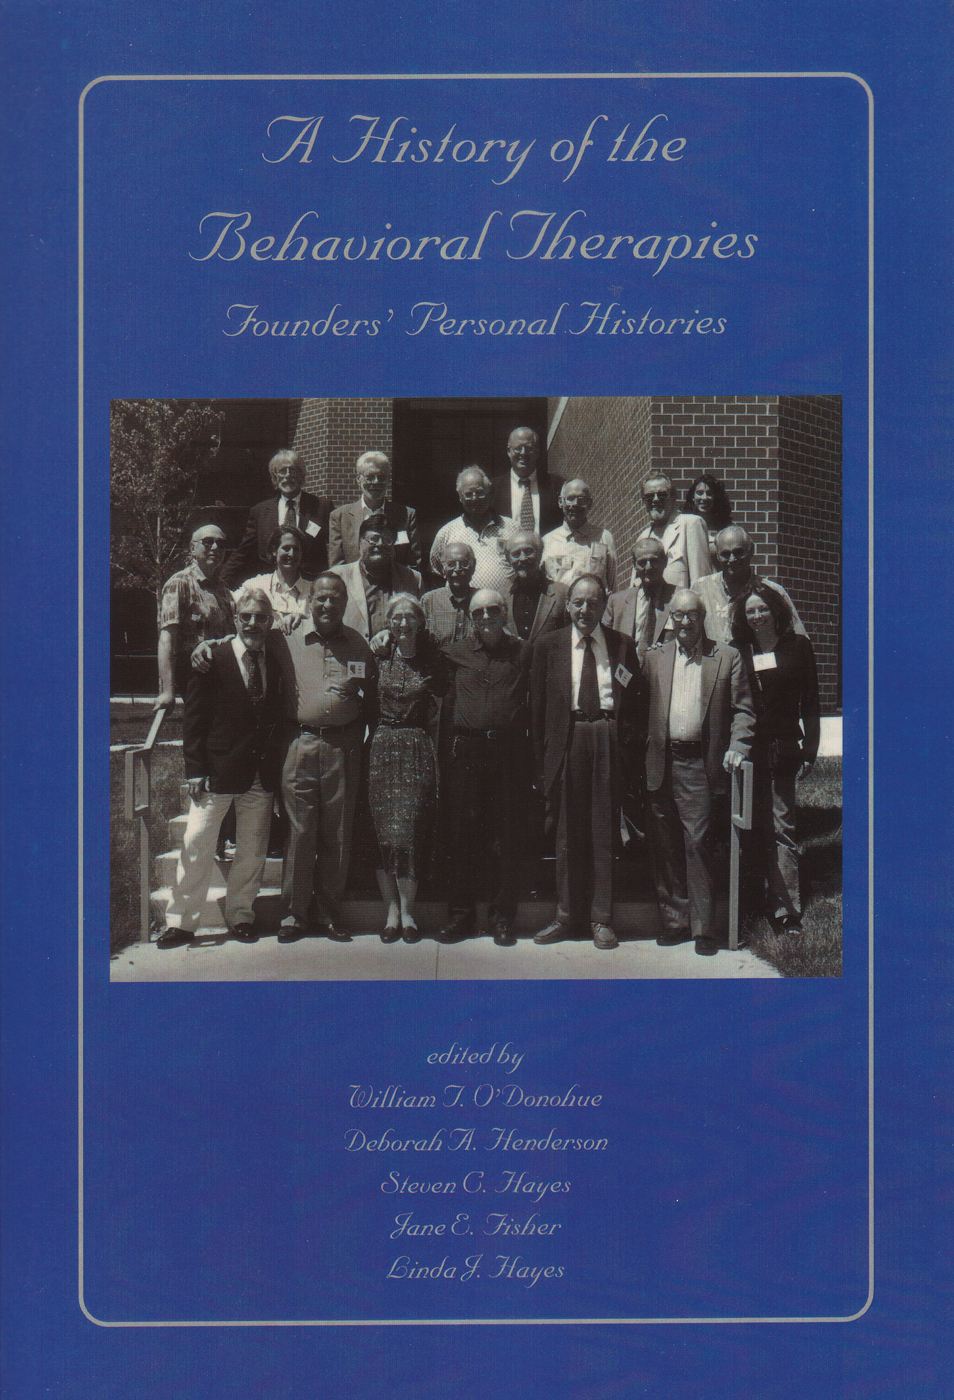 A History of the Behavioral Therapies